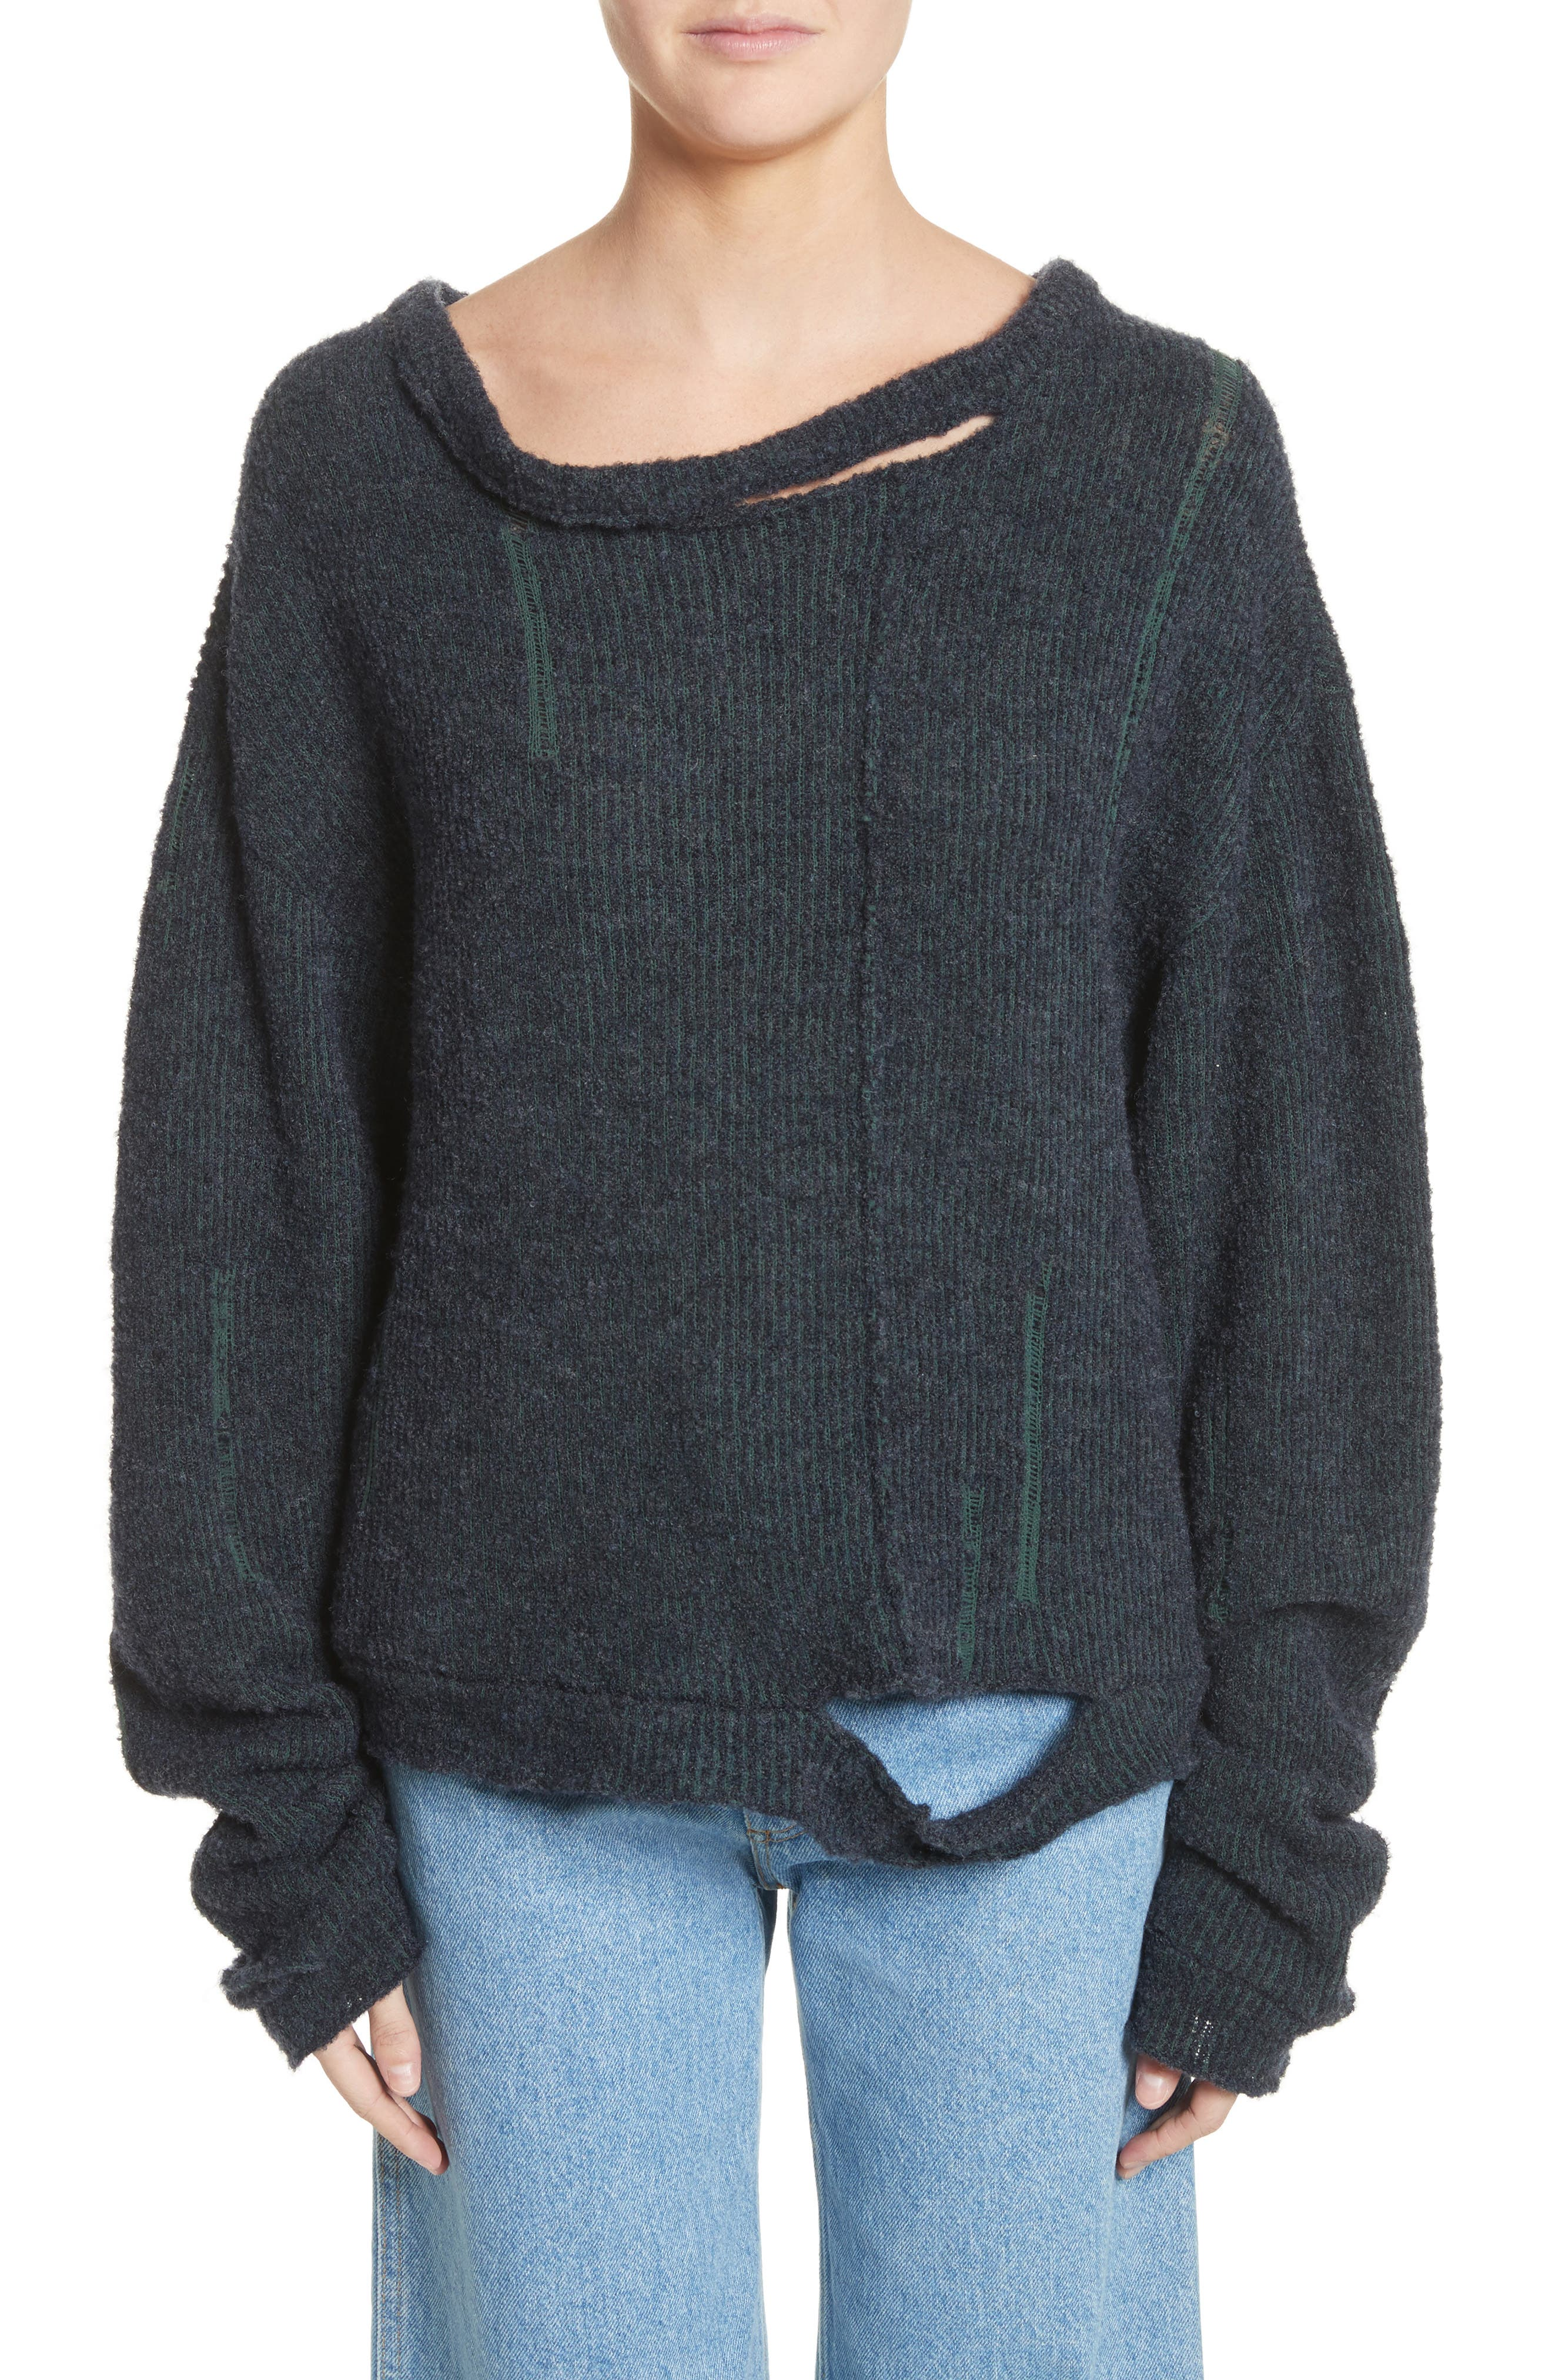 Wiggly Road Sweater,                             Main thumbnail 1, color,                             Navy